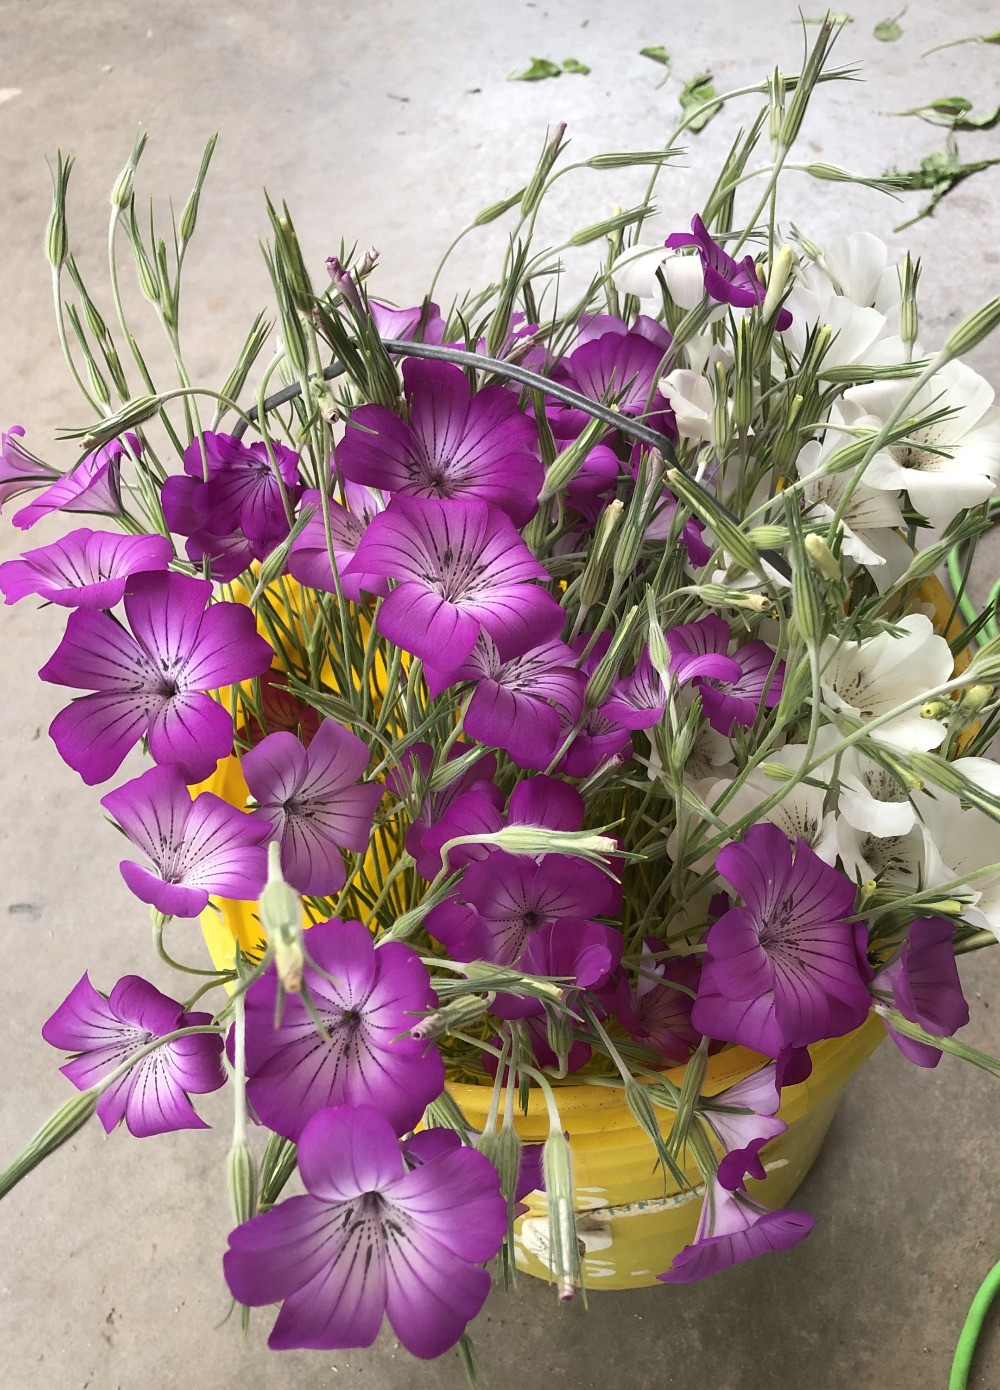 Delicate purple and white flowers in a yellow bucket